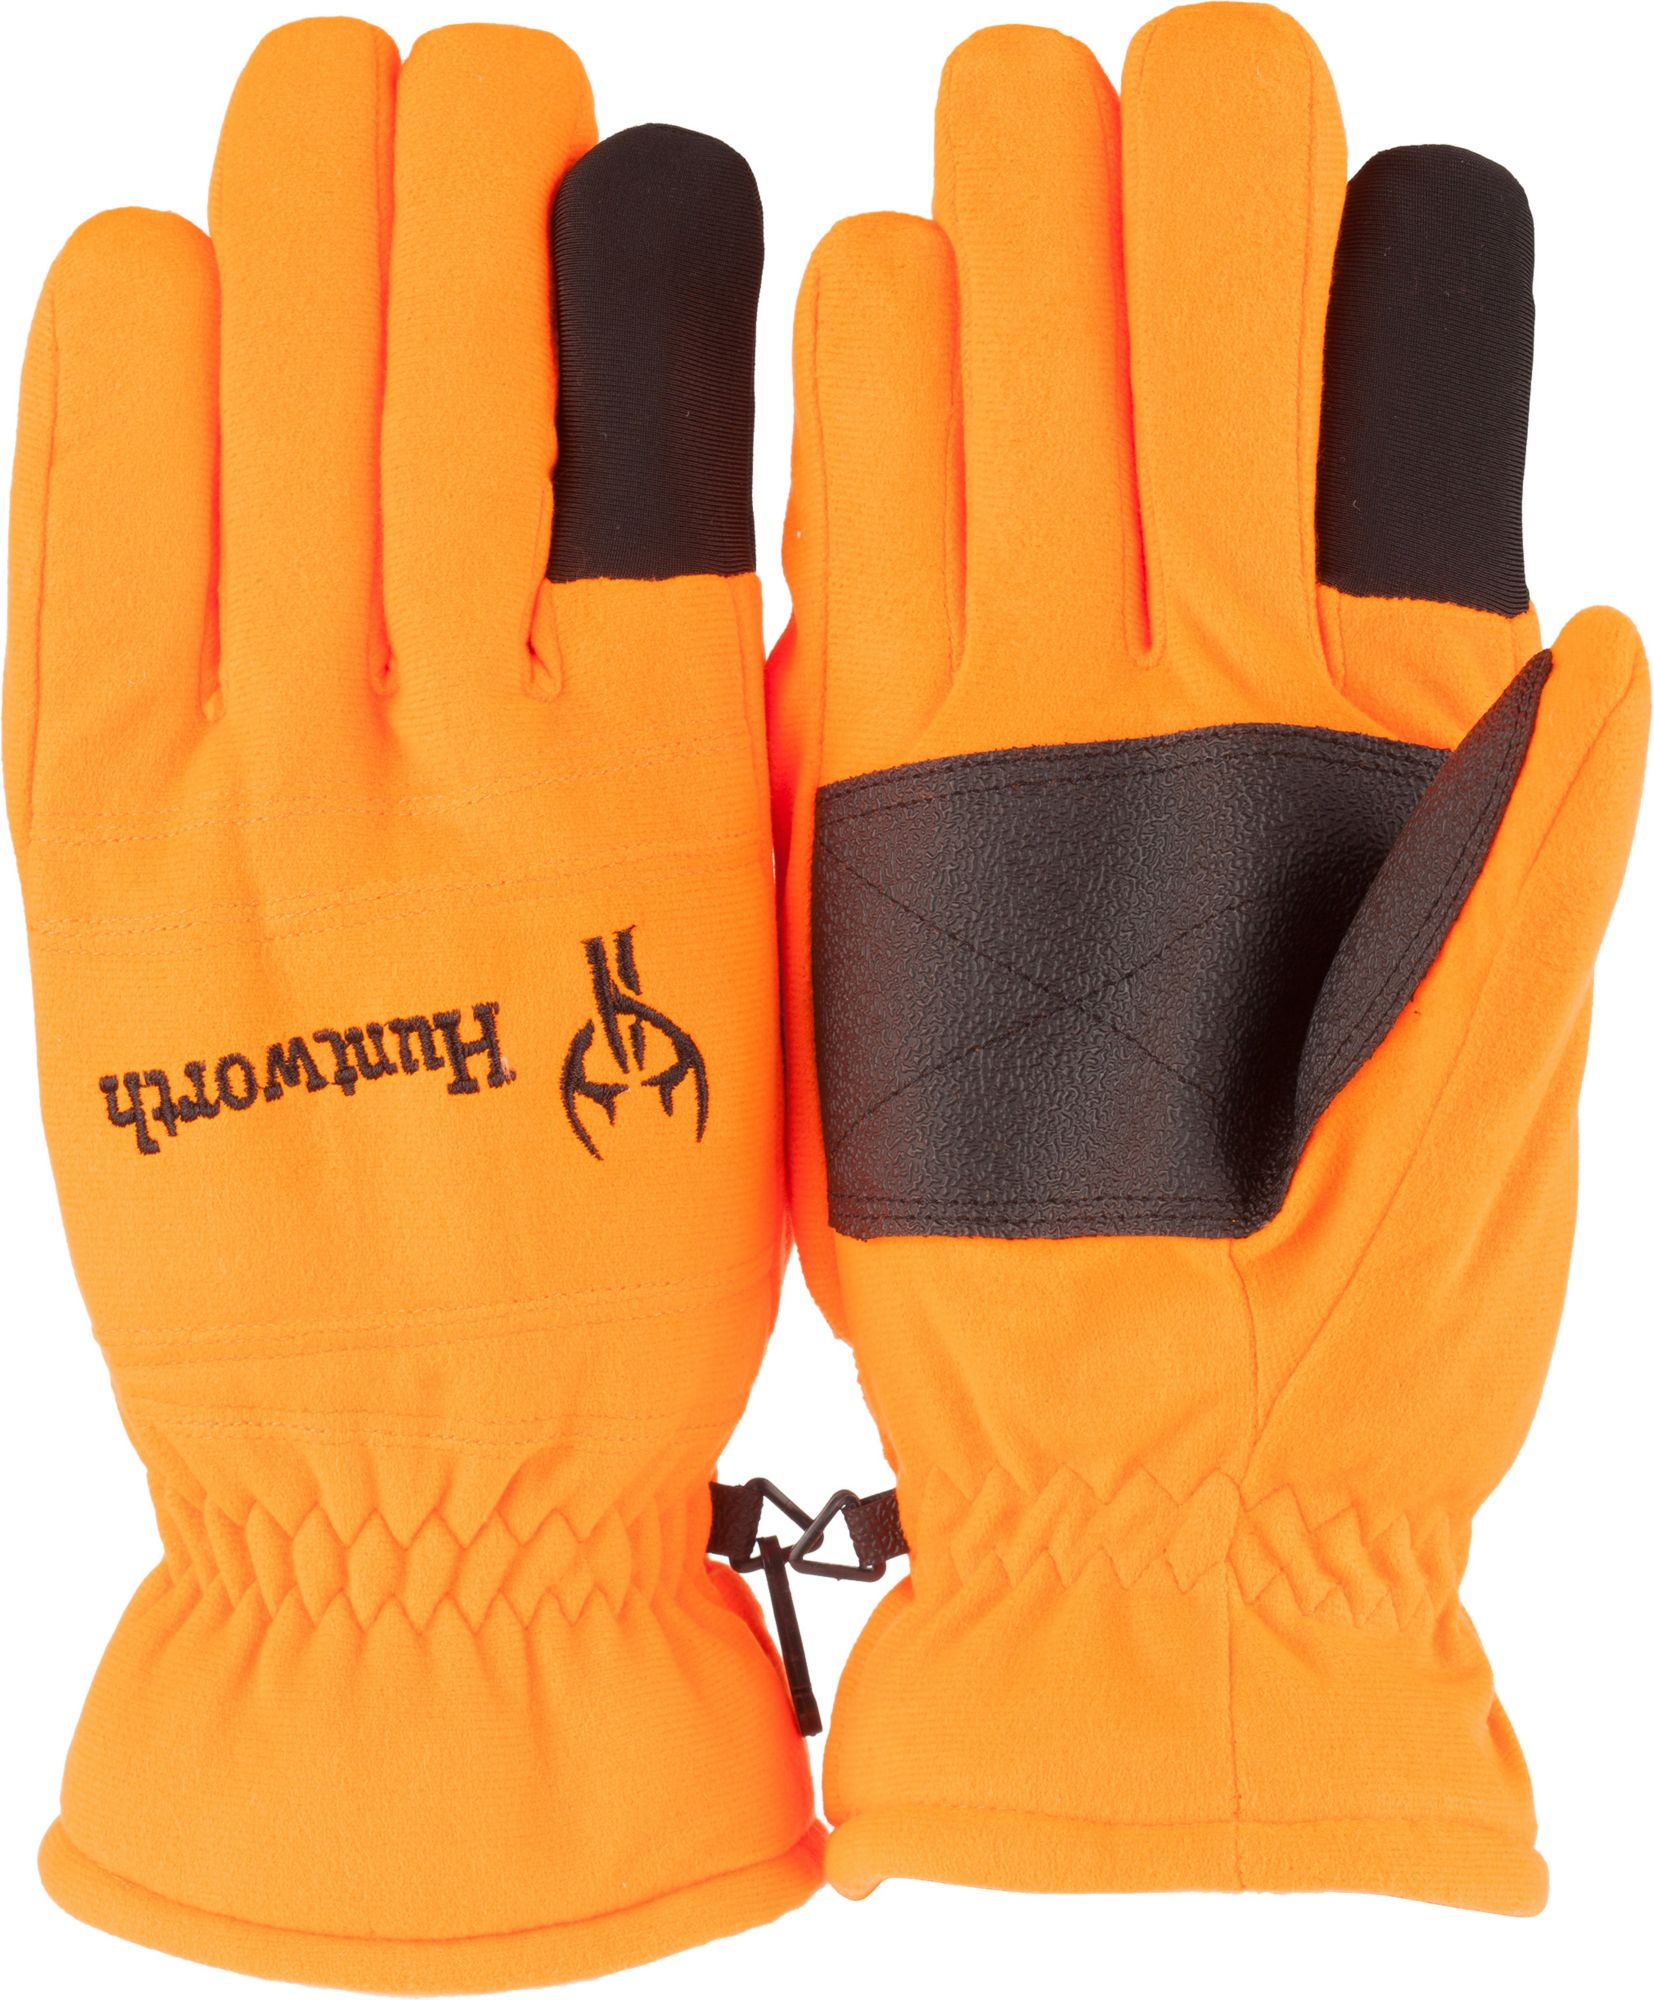 Huntworth Youth Thinsulate Insulated Waterproof Hunting Gloves, Kids, Blaze